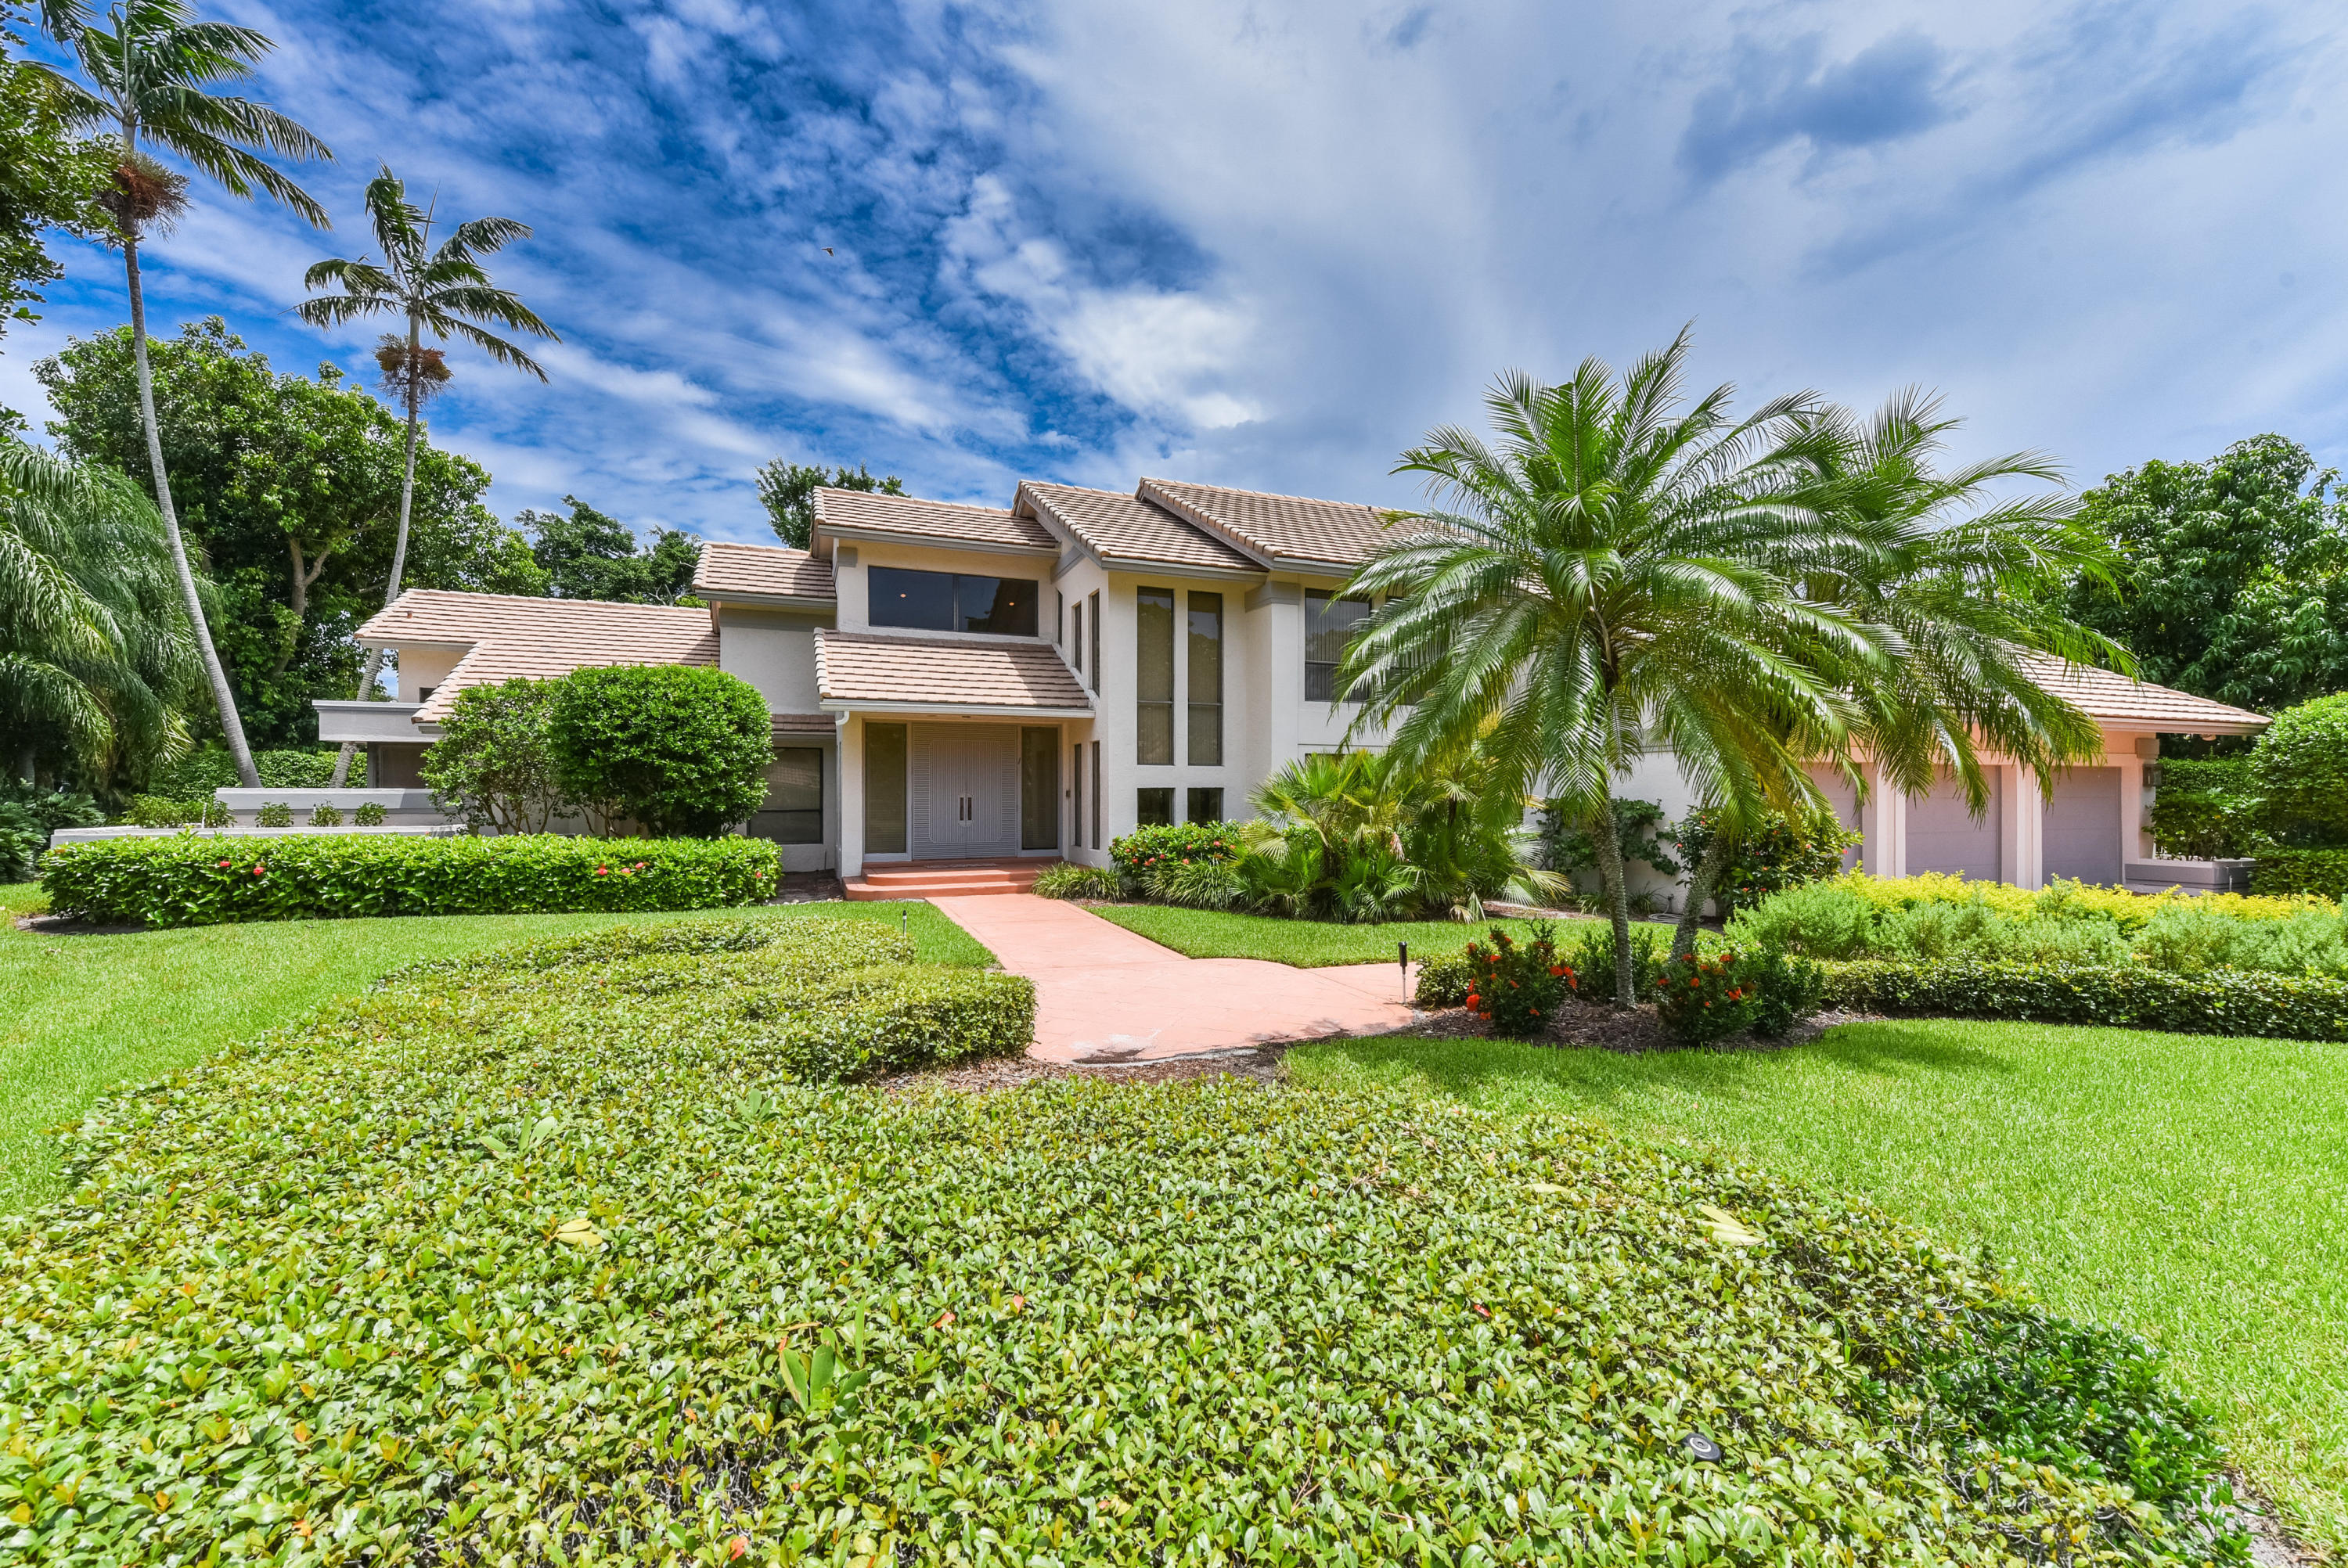 Photo of 3275 S Saint Charles Street, Boca Raton, FL 33434